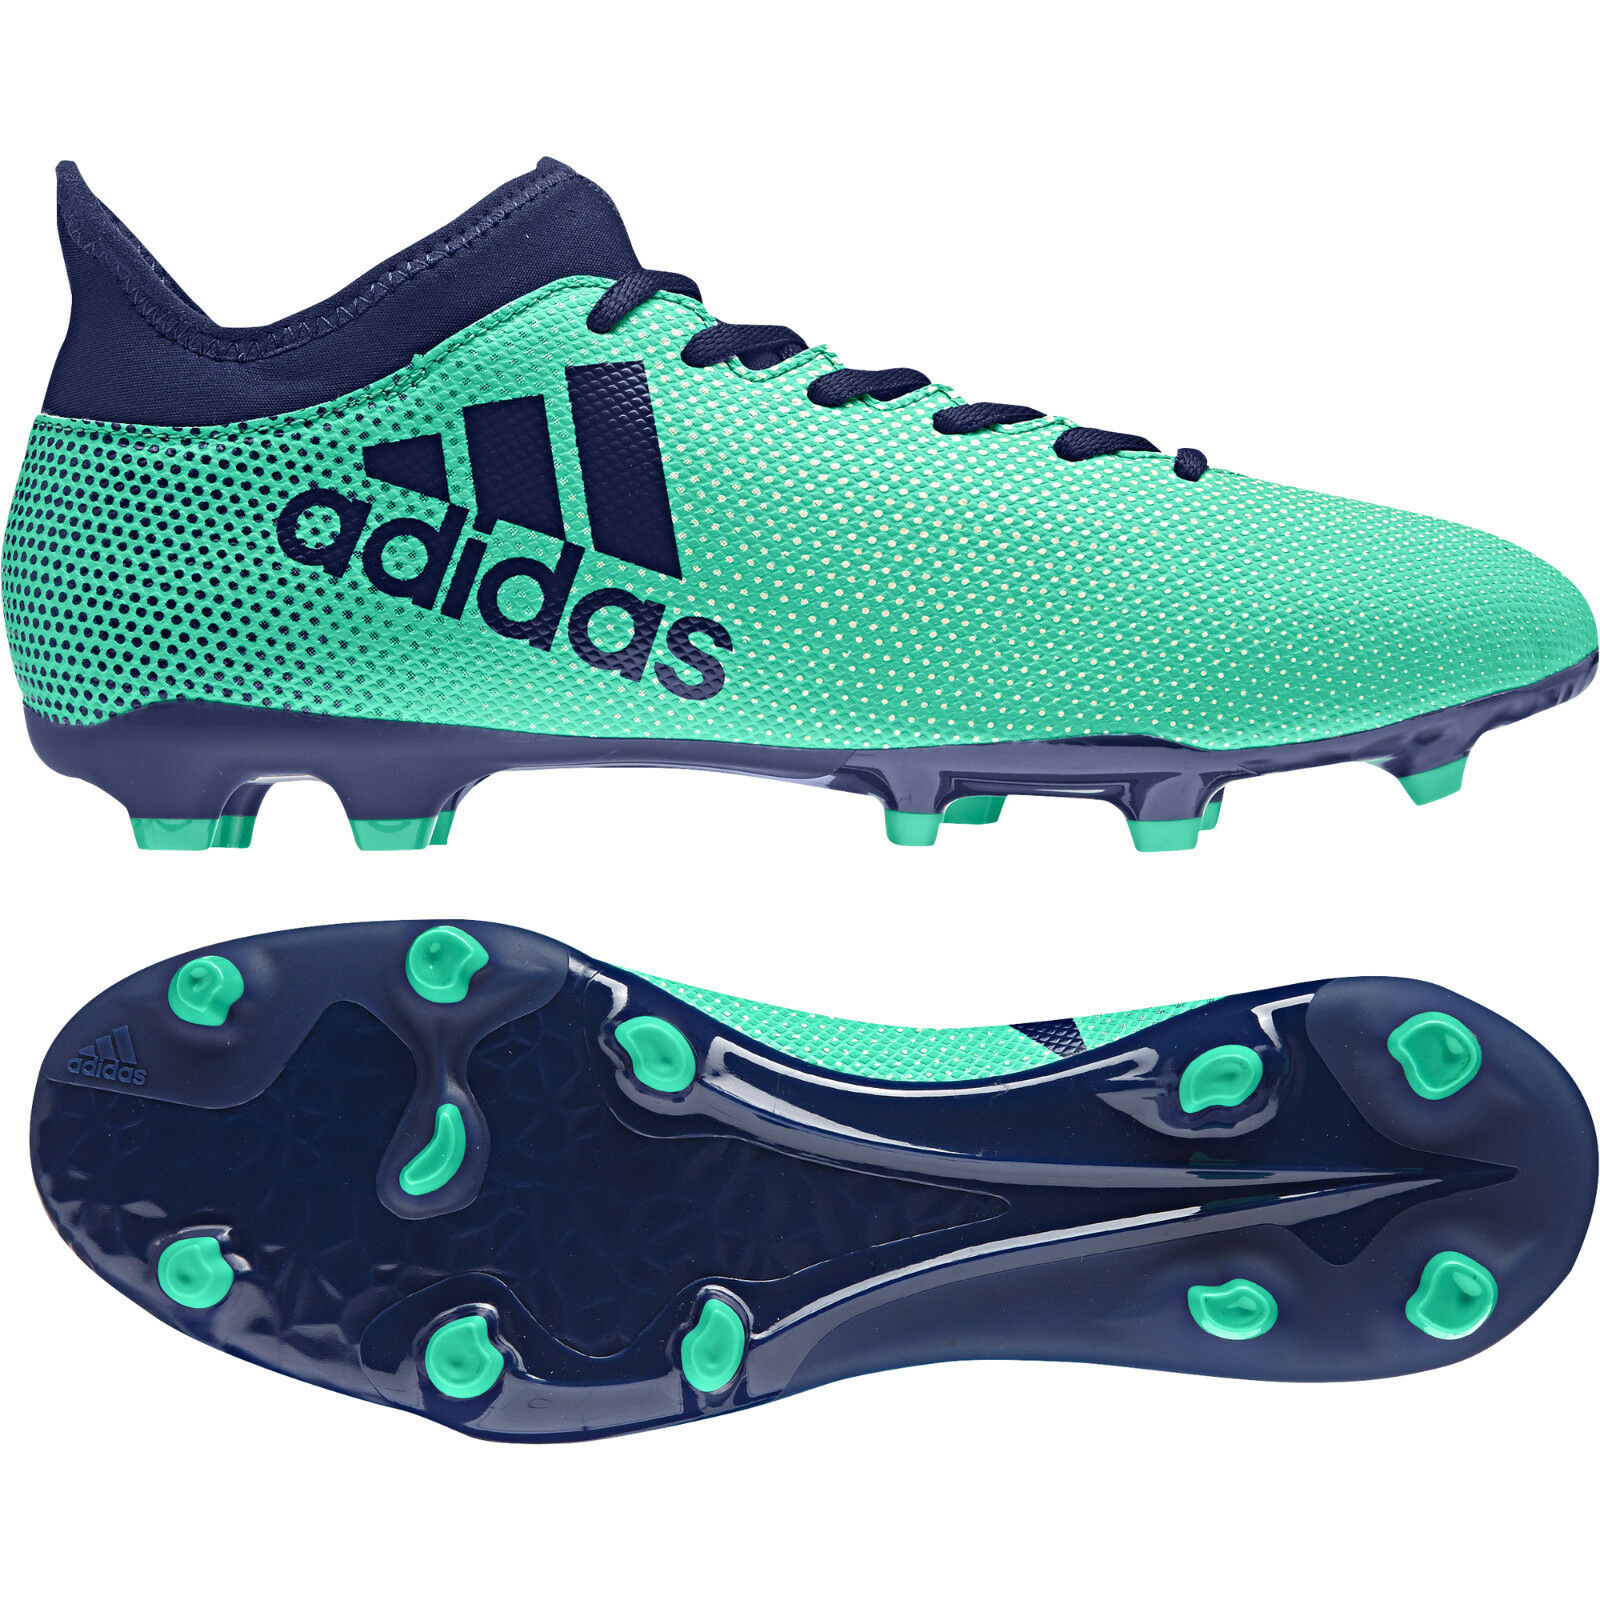 Adidas Men Boots shoes Soccer Cleats X 17.3 Firm Ground Football Boots CP9194